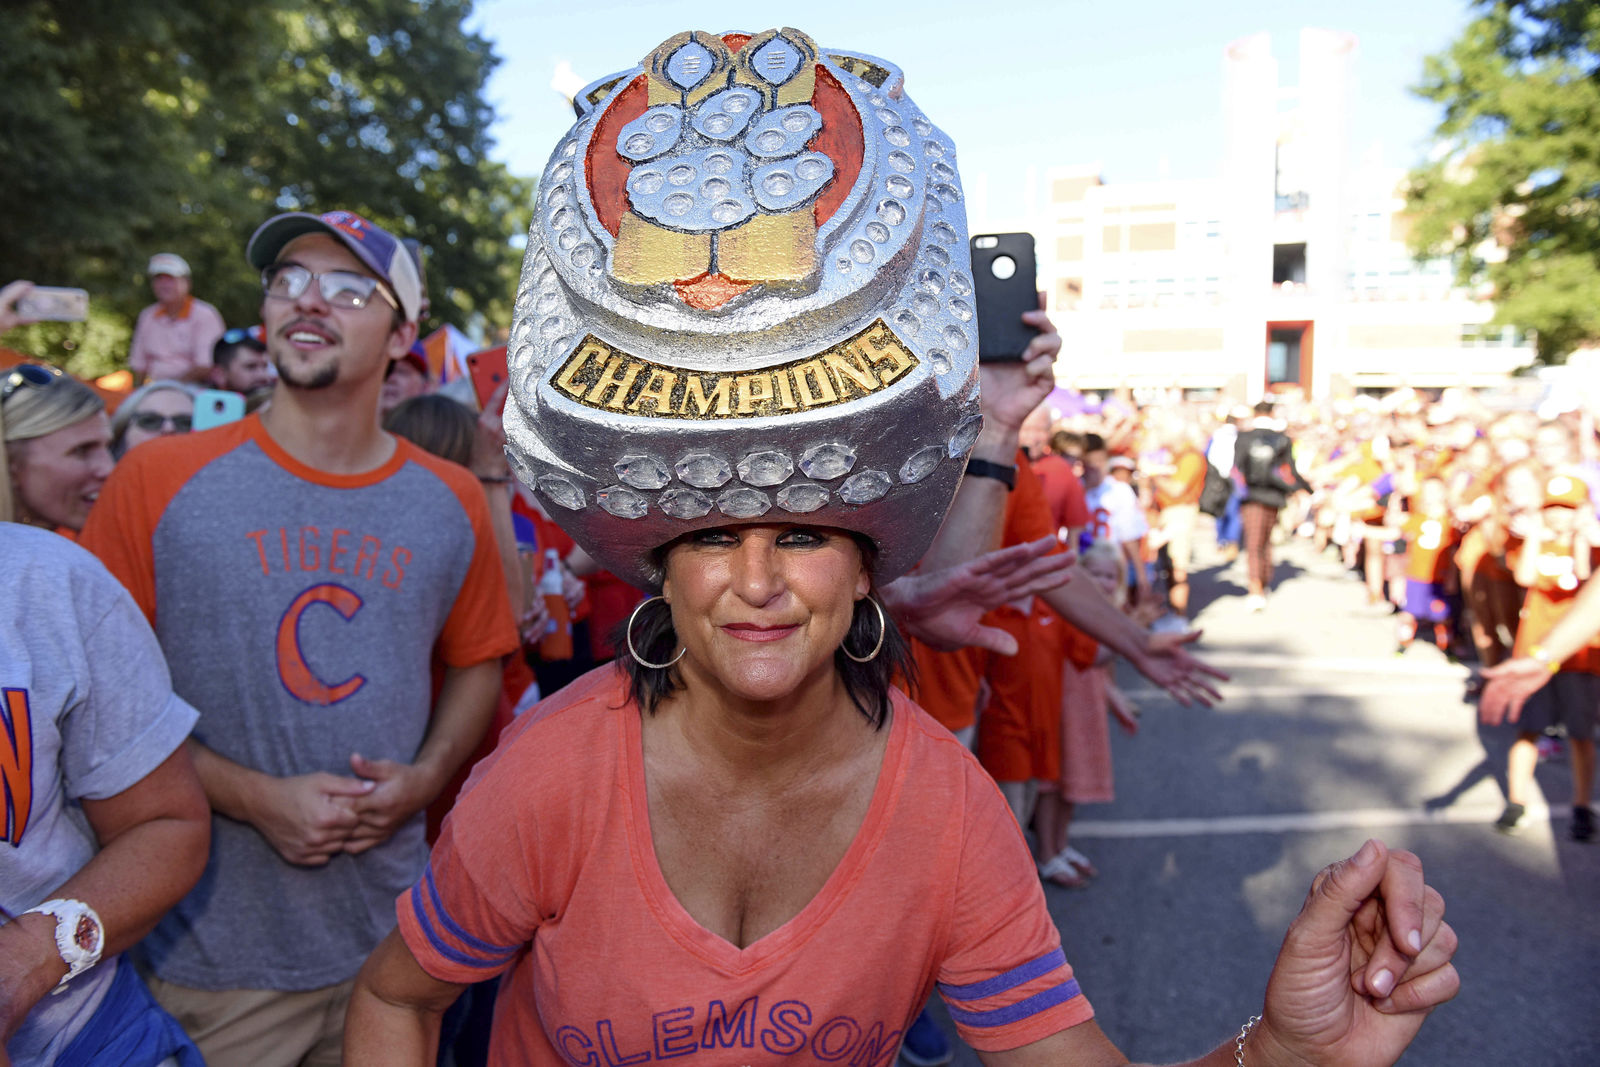 Clemson fan Theresa Gardner shows her support wearing an oversized championship ring before the team's NCAA college football game against Georgia Tech Thursday, Aug. 29, 2019, in Clemson, S.C. (AP Photo/Richard Shiro)